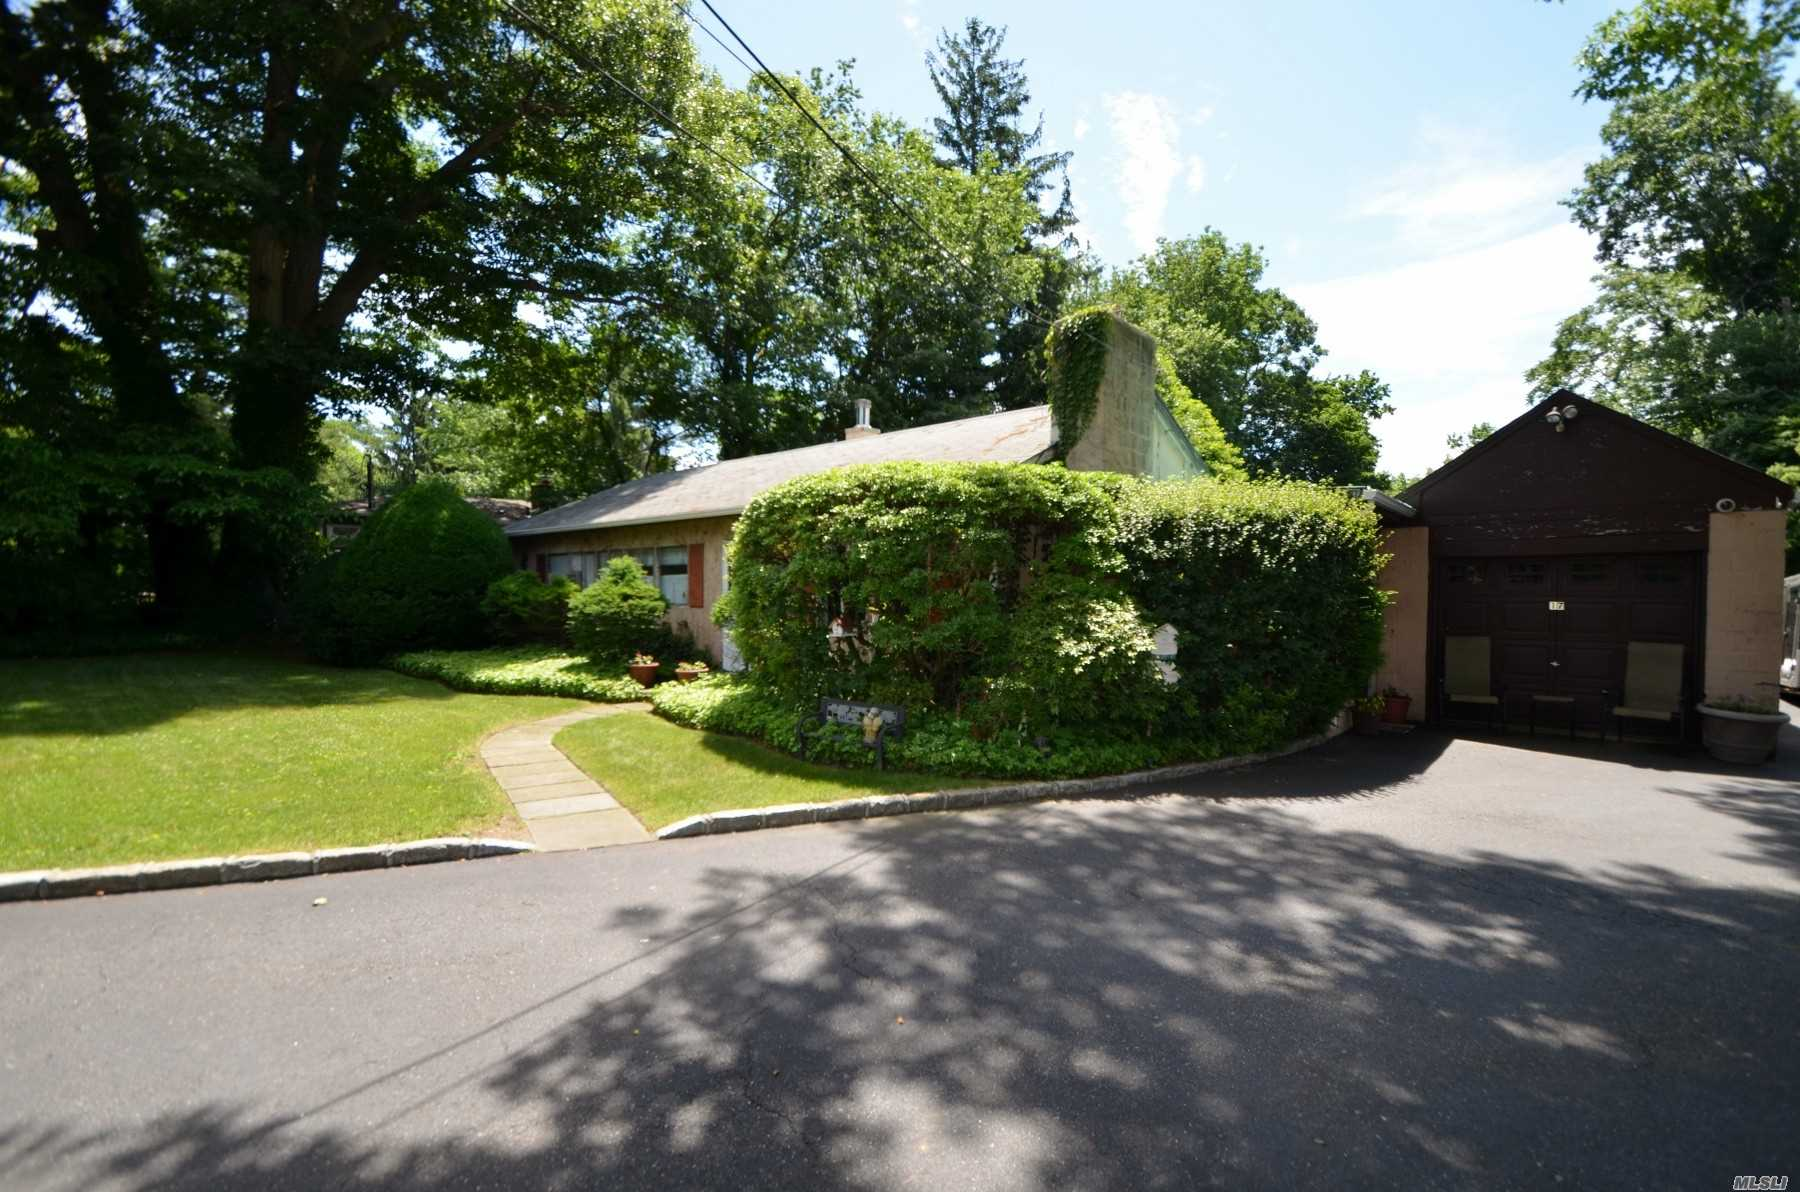 Fun In The Sun! Country Club Living In Your Own Backyard! Enjoy This Wonderful Property With   In-Ground Pool! Lr W/Fpl, Fdr, Kitchen, Den, 4 Bdrms, Full Bath, Laundry Rm. Breezeway To Beautiful Yard With In-Ground 18X33 L Shaped Heated Pool. 1 Car Detached Garage. A Must See!